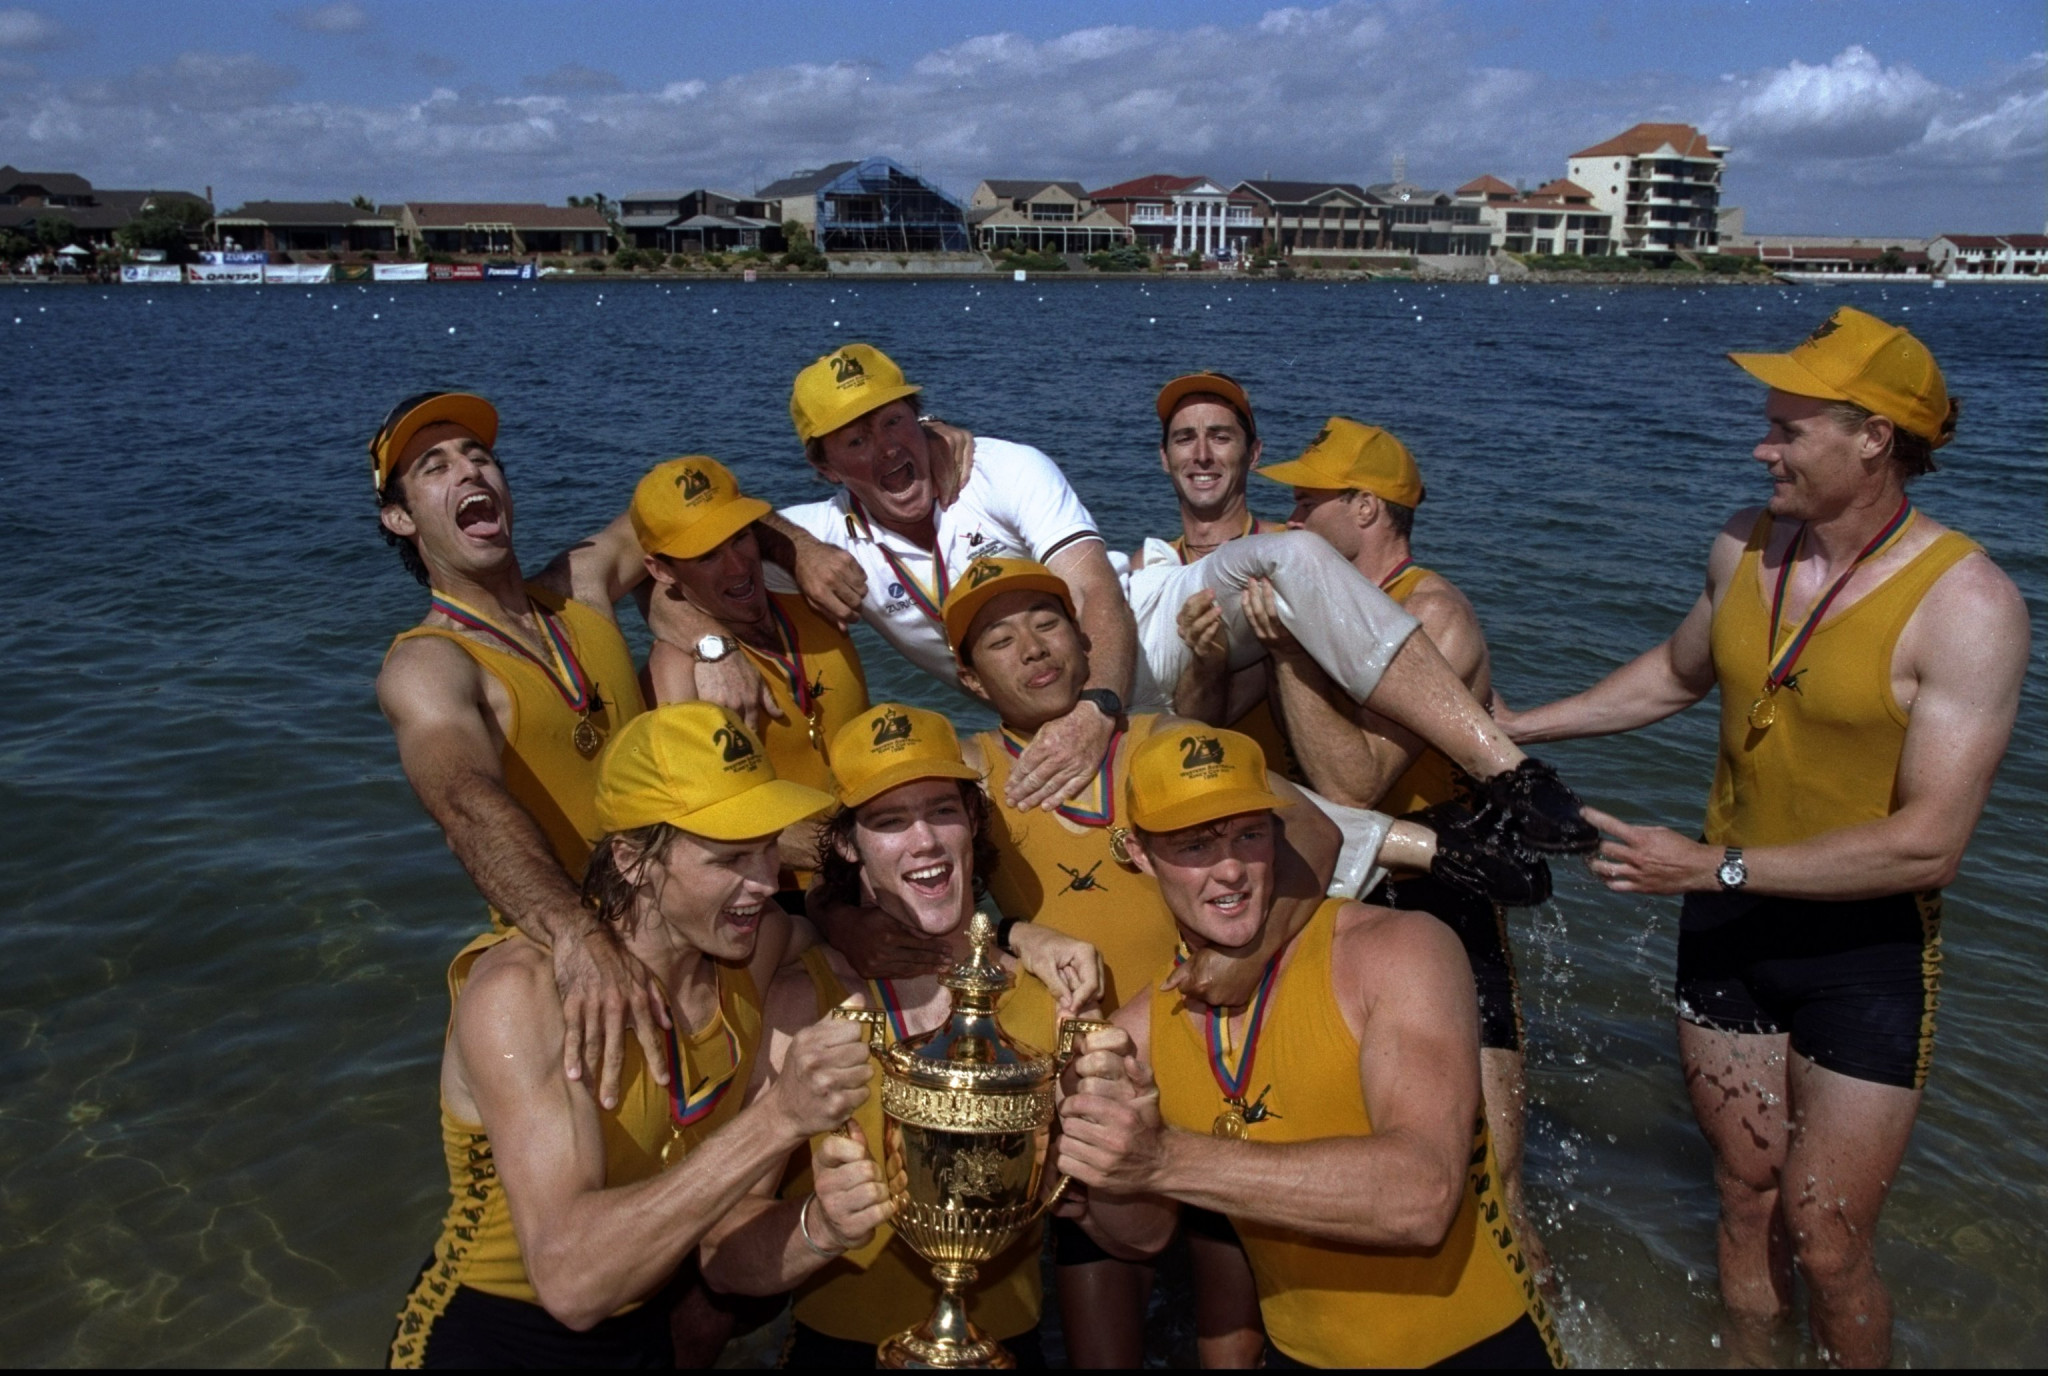 The late Nick Garratt was responsible for coaching Western Australia to a memorable King's Cup victory in 1999 in West Lakes in South Australia ©Getty Images